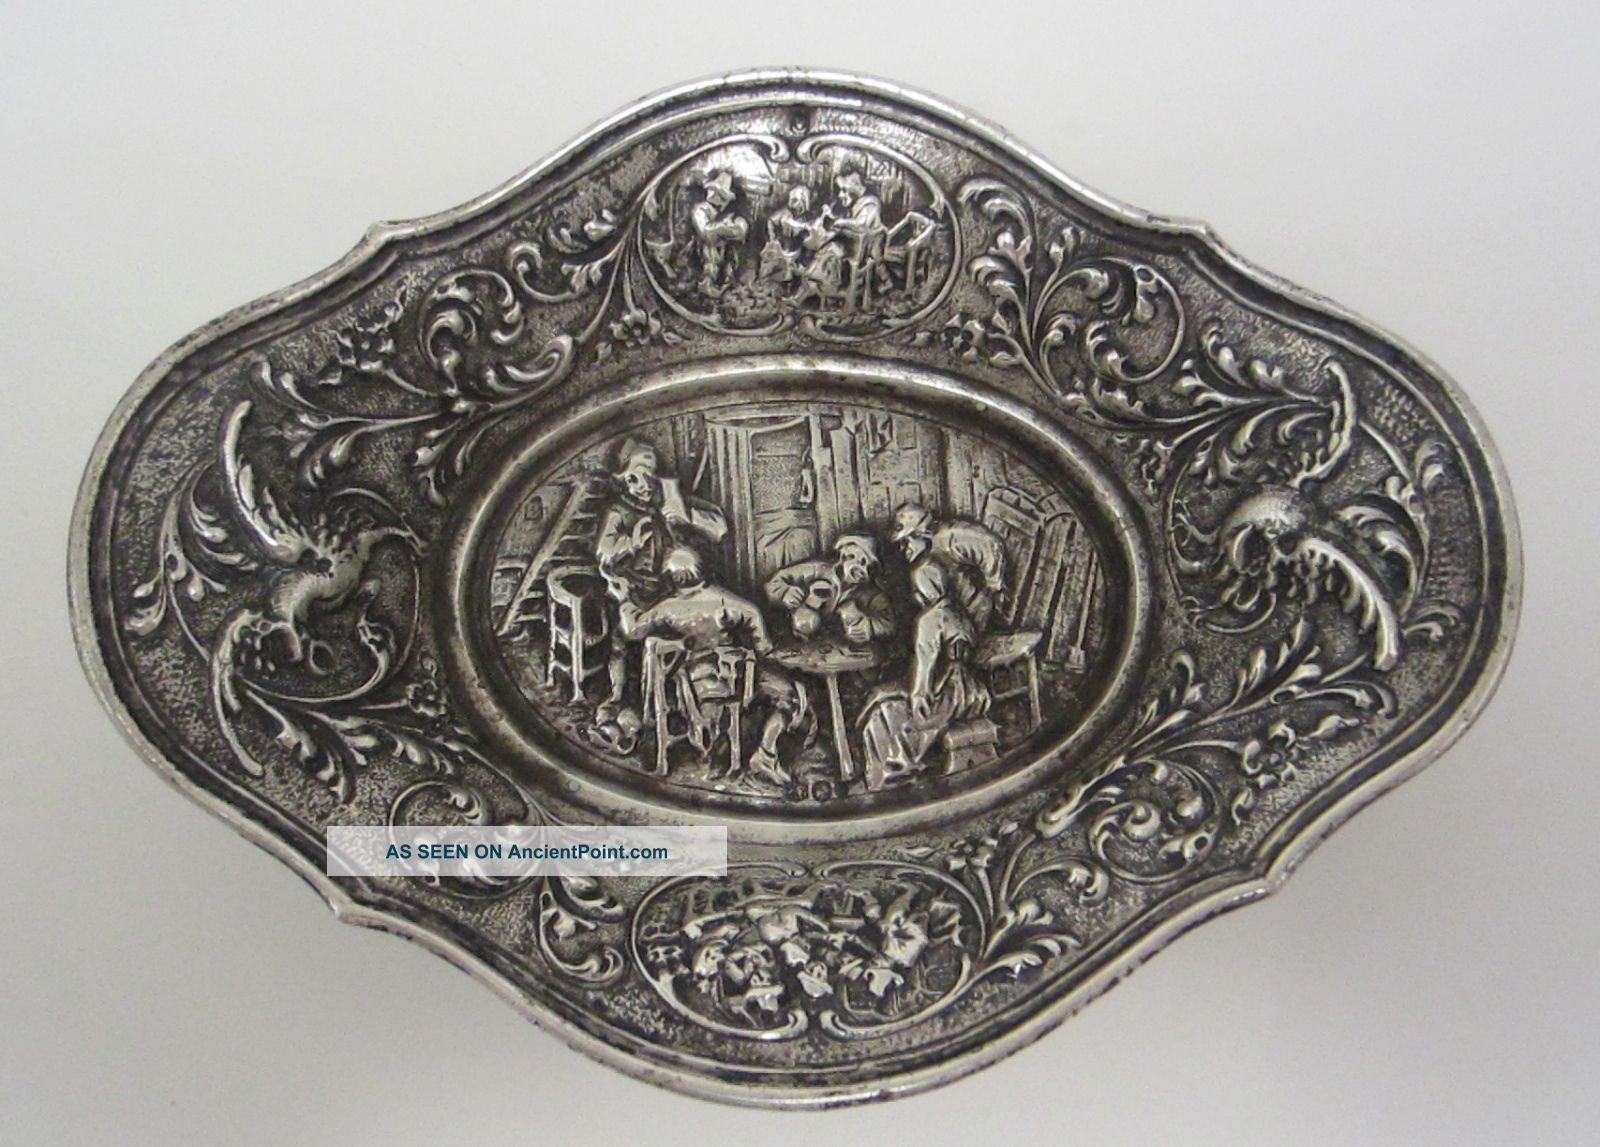 Antique 1837 Dutch Repoussé Silver Dish Other Antique Non-U.S. Silver photo